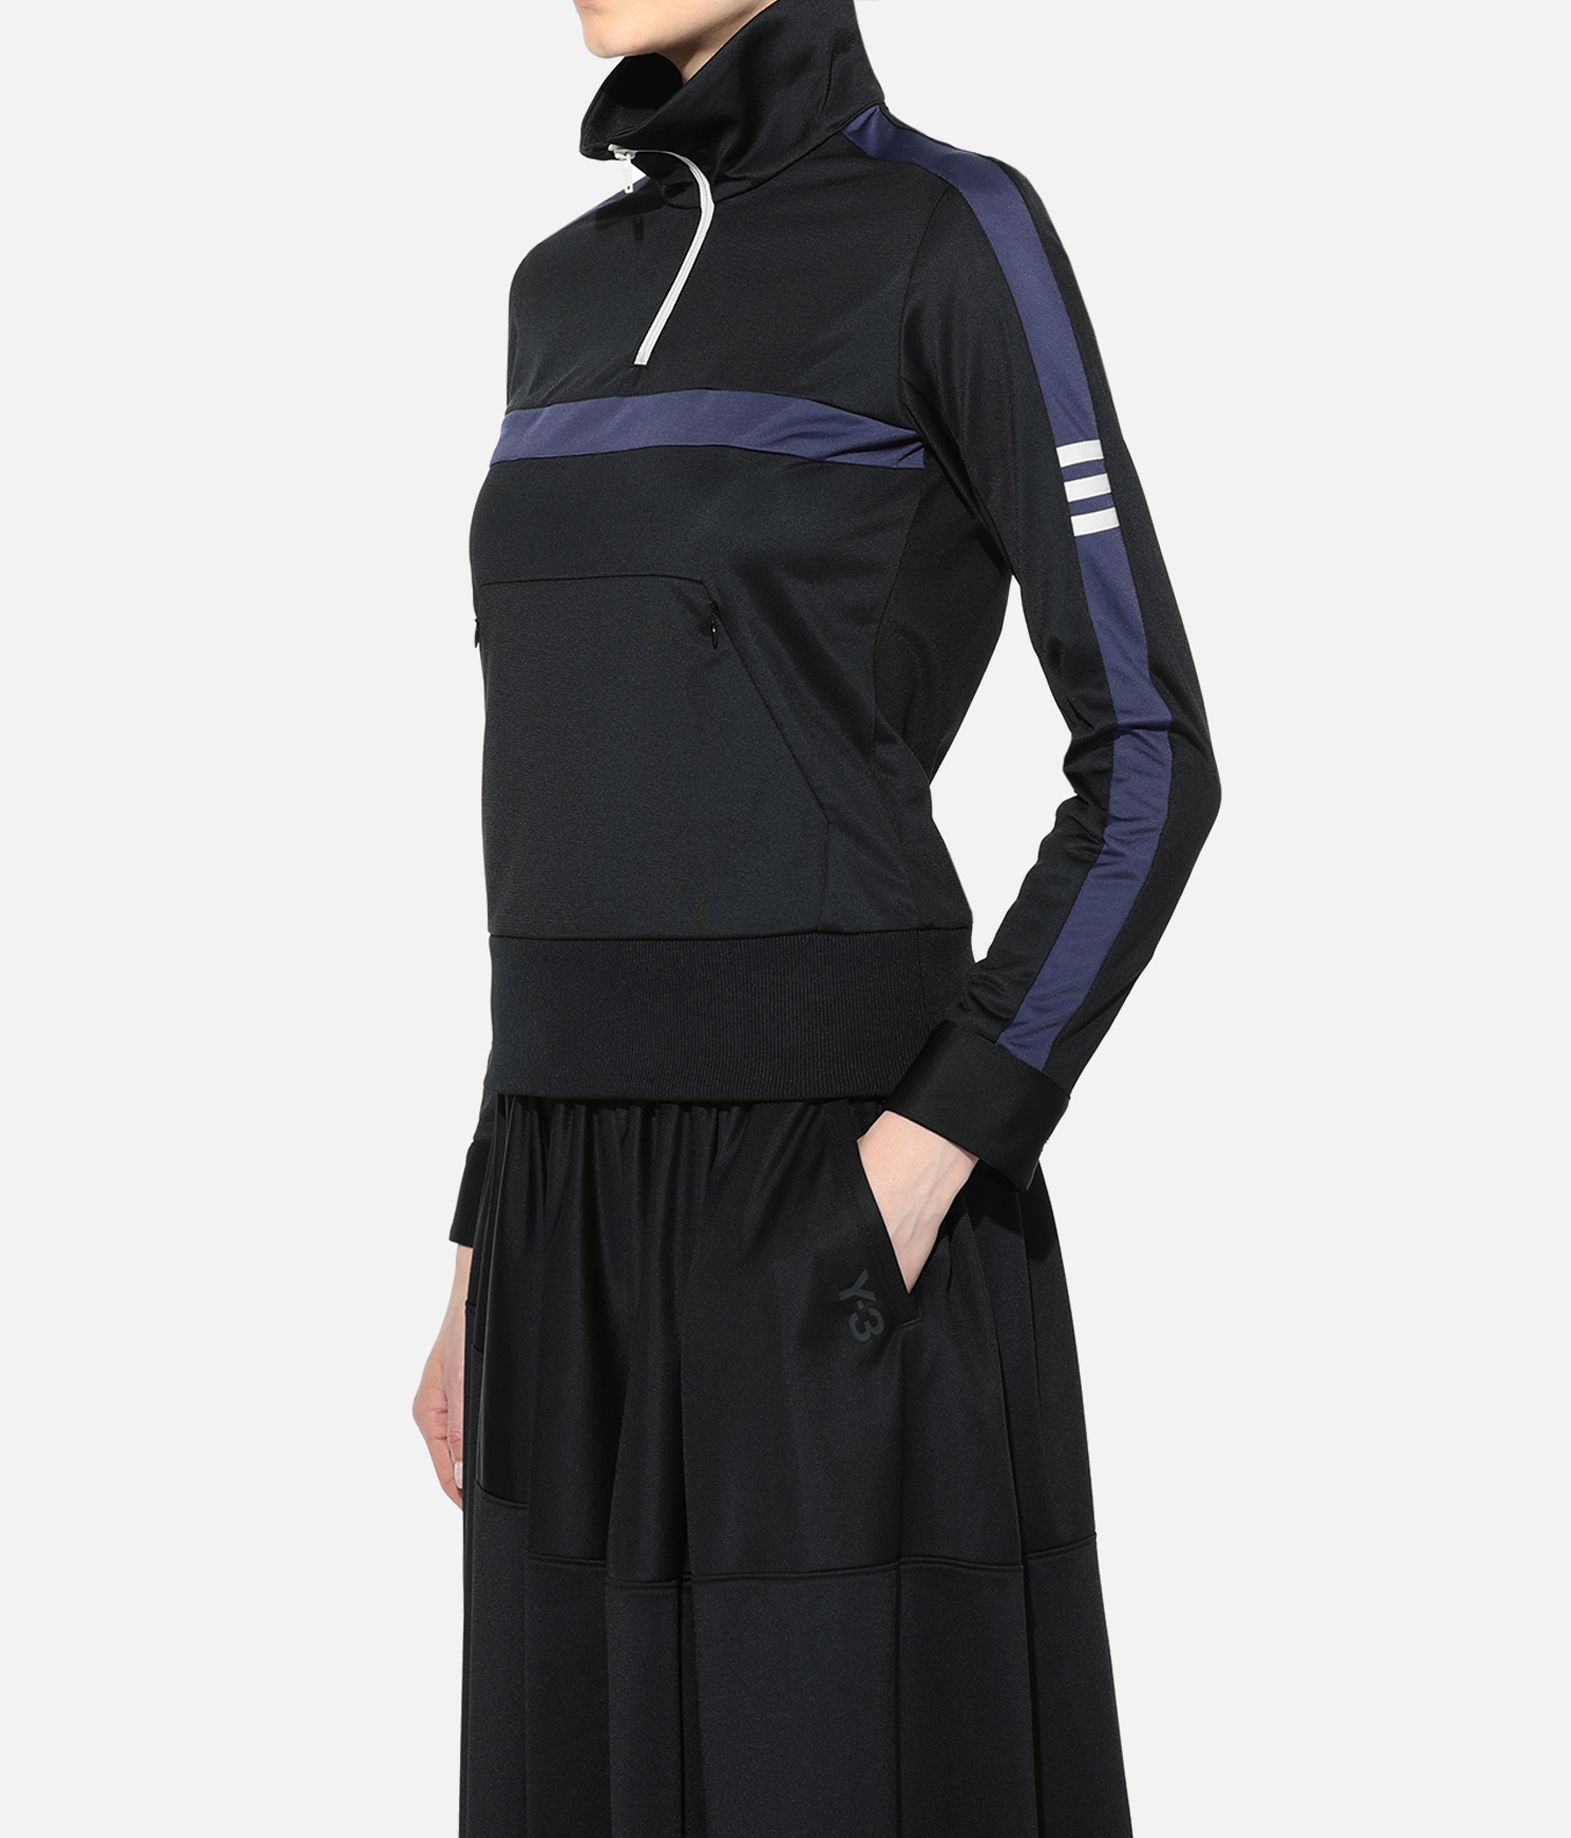 Y-3 Y-3 Firebird Half-Zip Track Jacket Track top Woman e